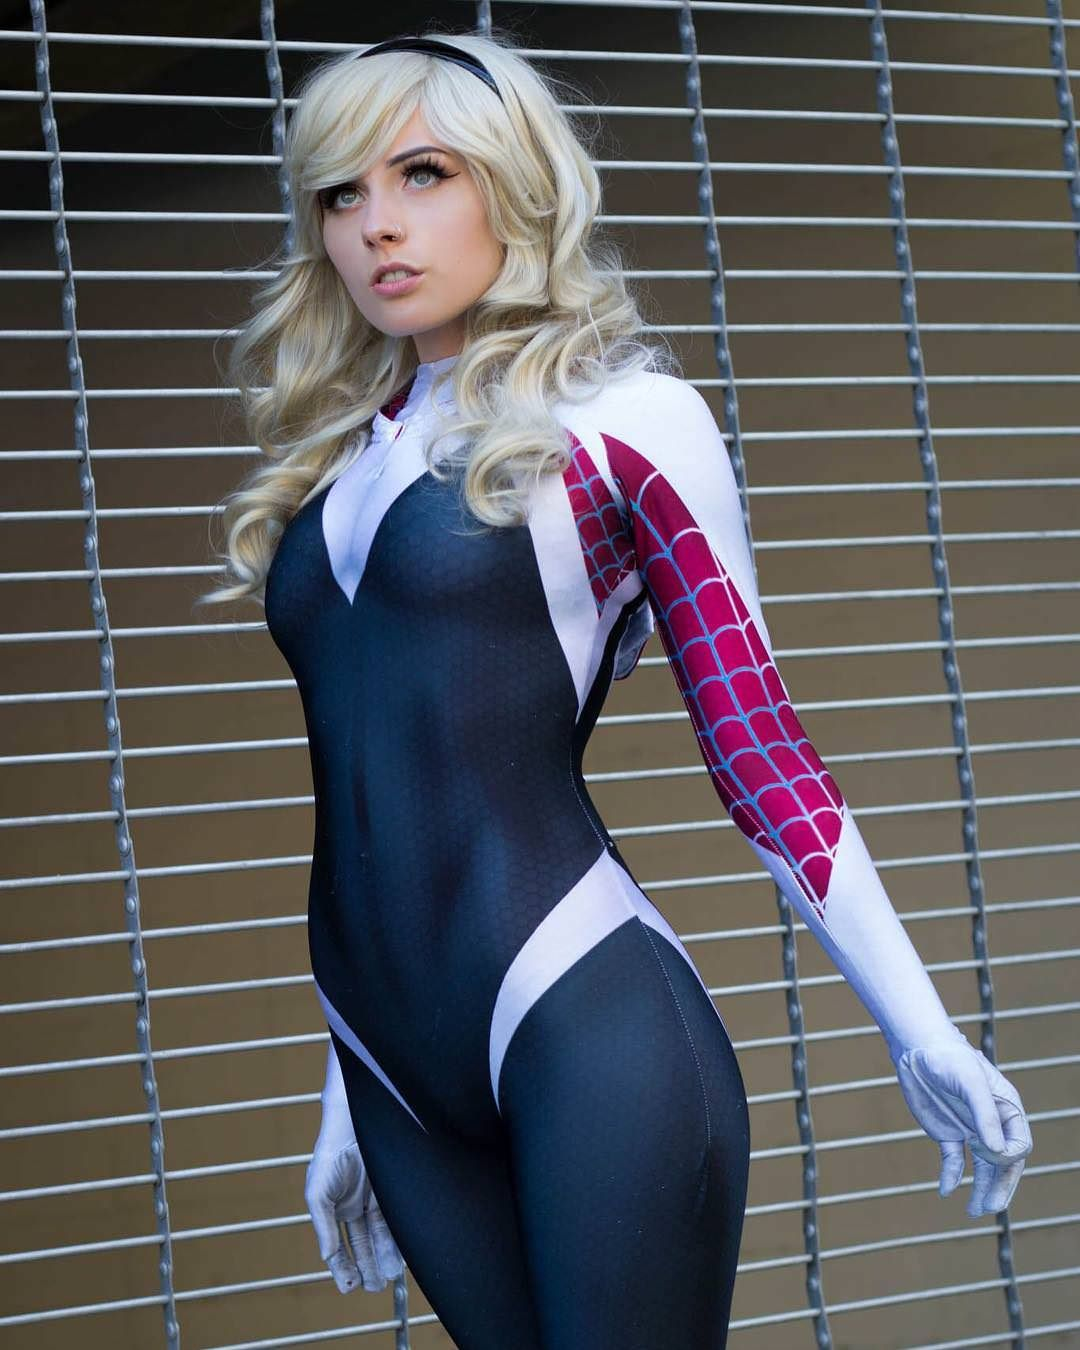 Spider Gwen sexy photos